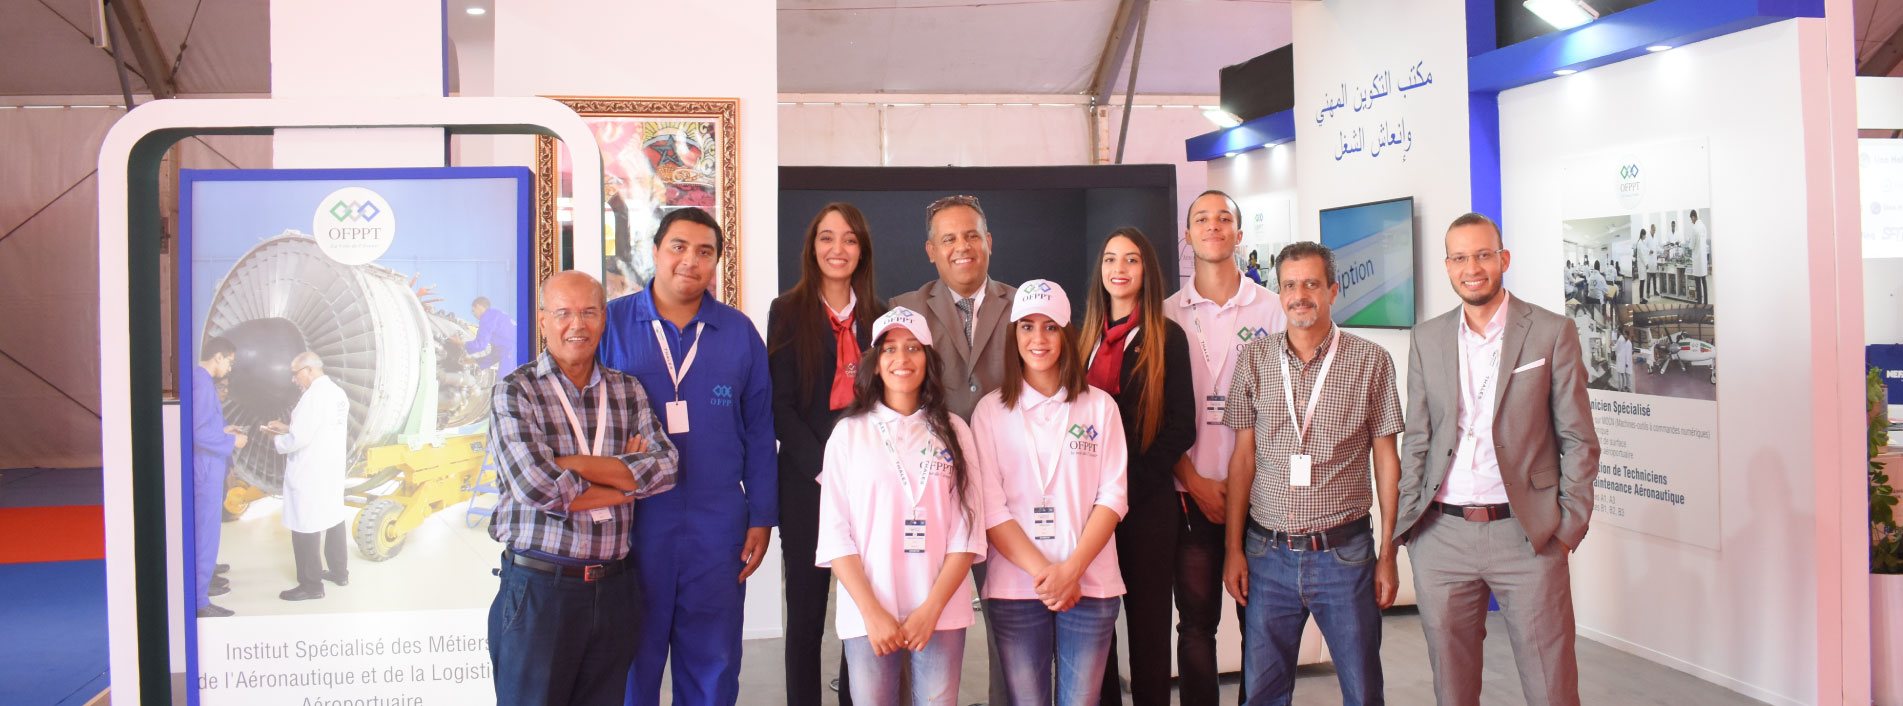 The OFPPT takes part in Marrakech Air Show